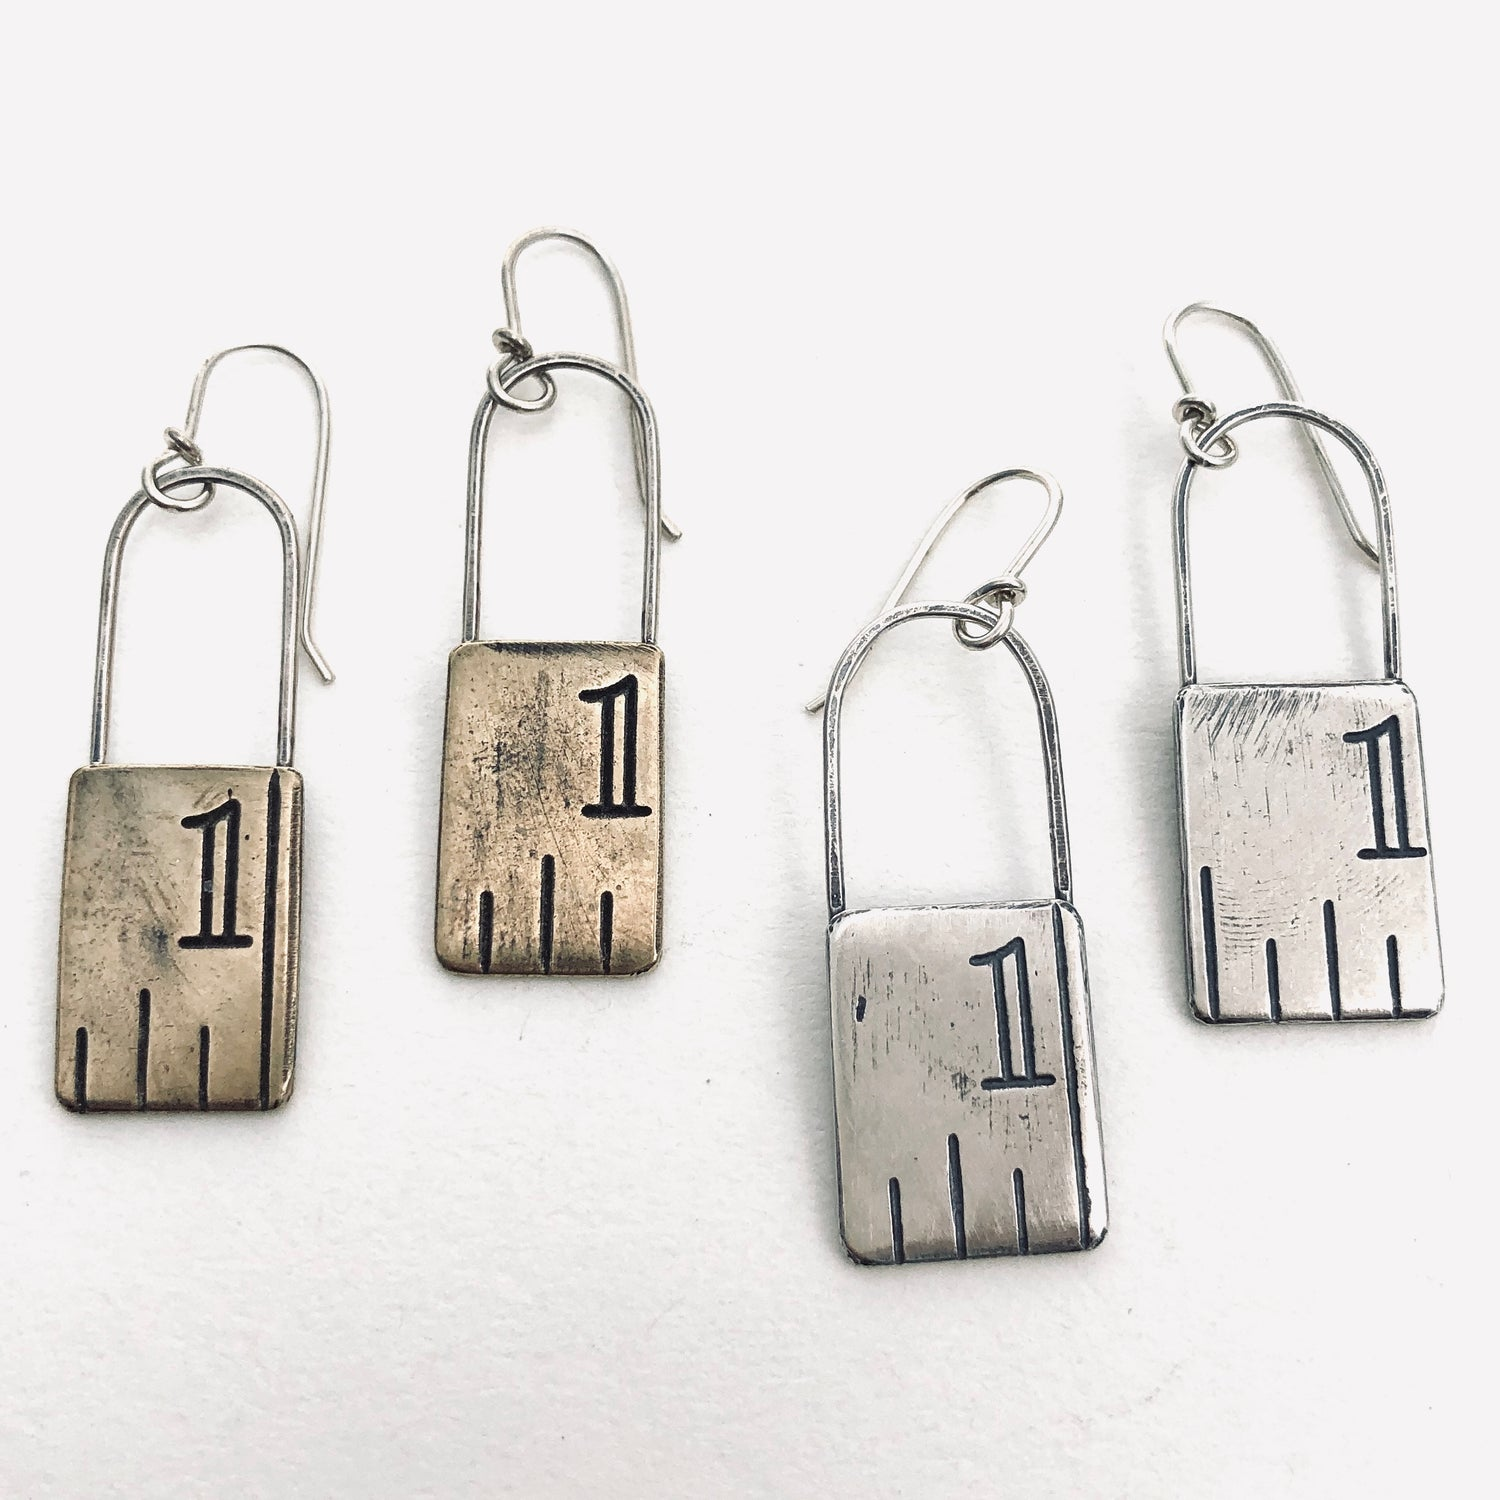 Image of Ruler swing earrings, small    Silver or brass